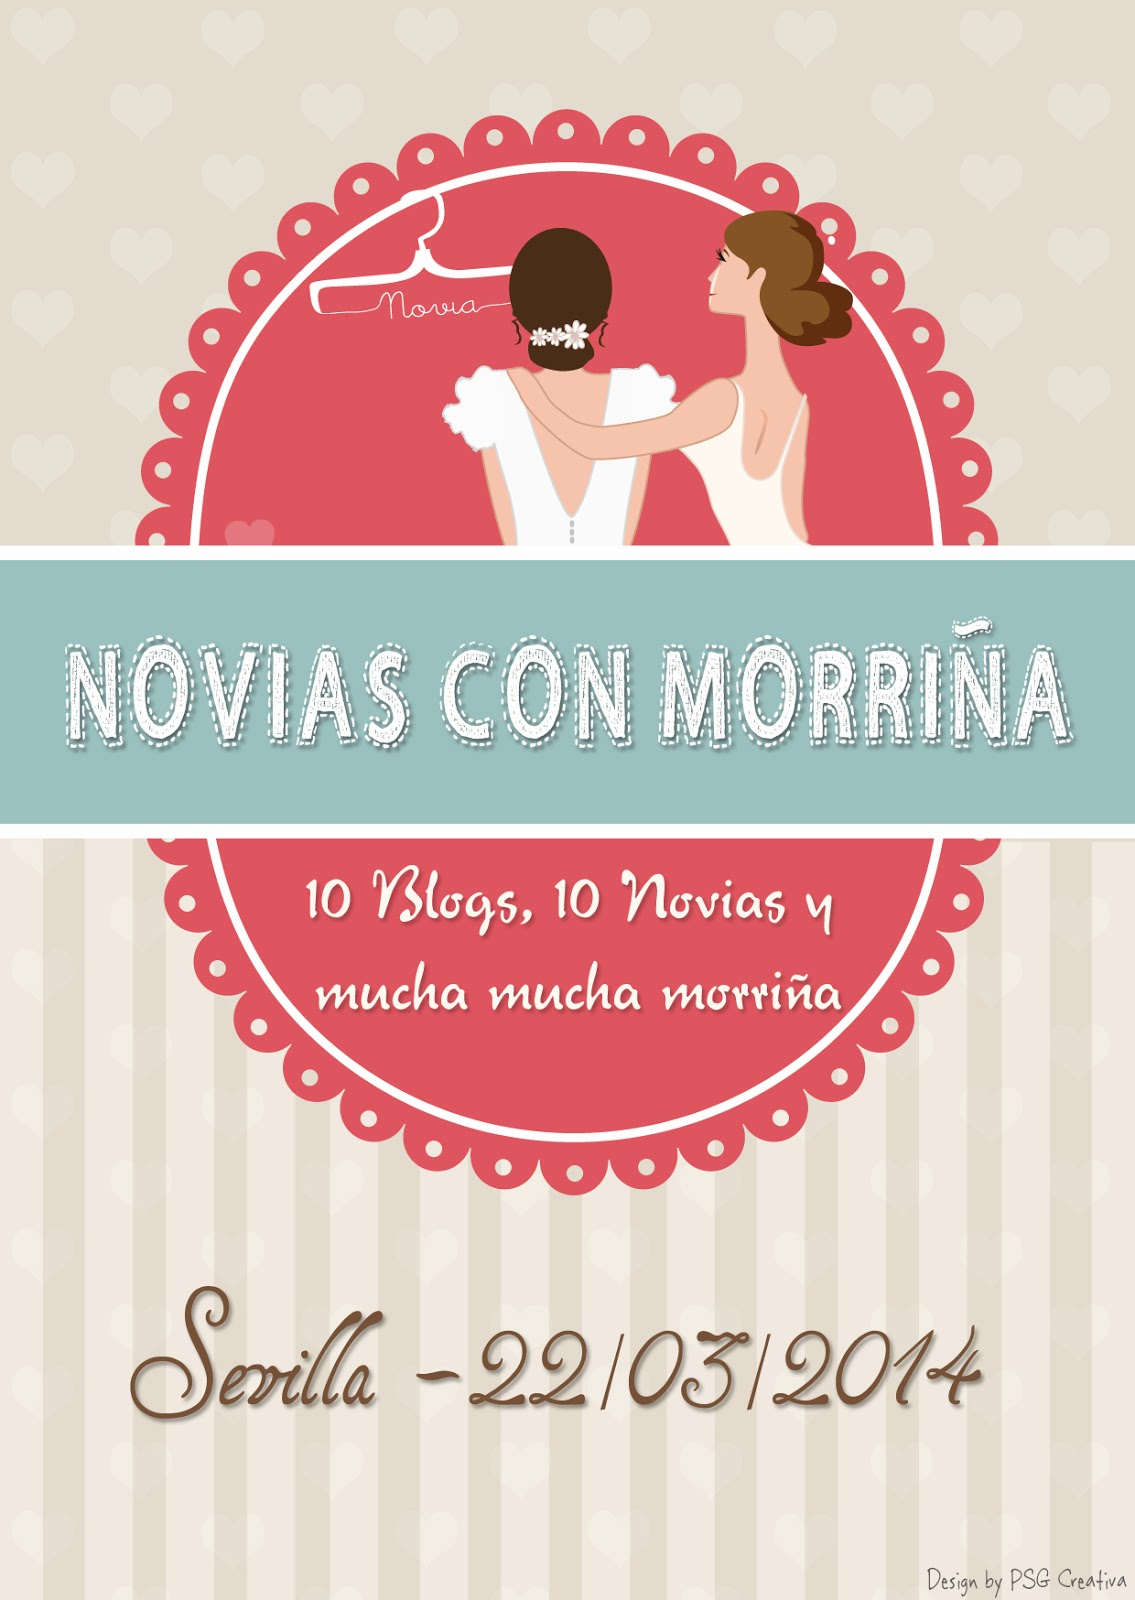 http://noviasconmorrina.wordpress.com/